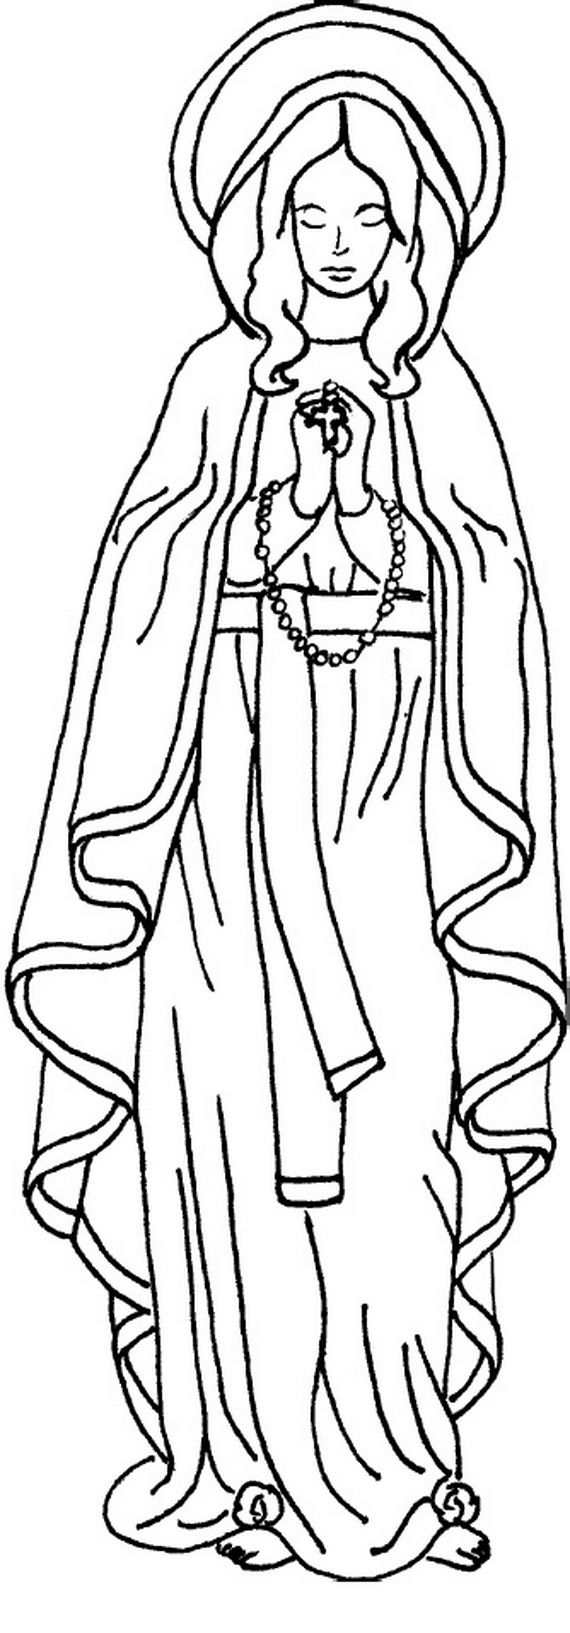 mary coloring pages 6 virgin mary coloring page coworksheets mary pages coloring